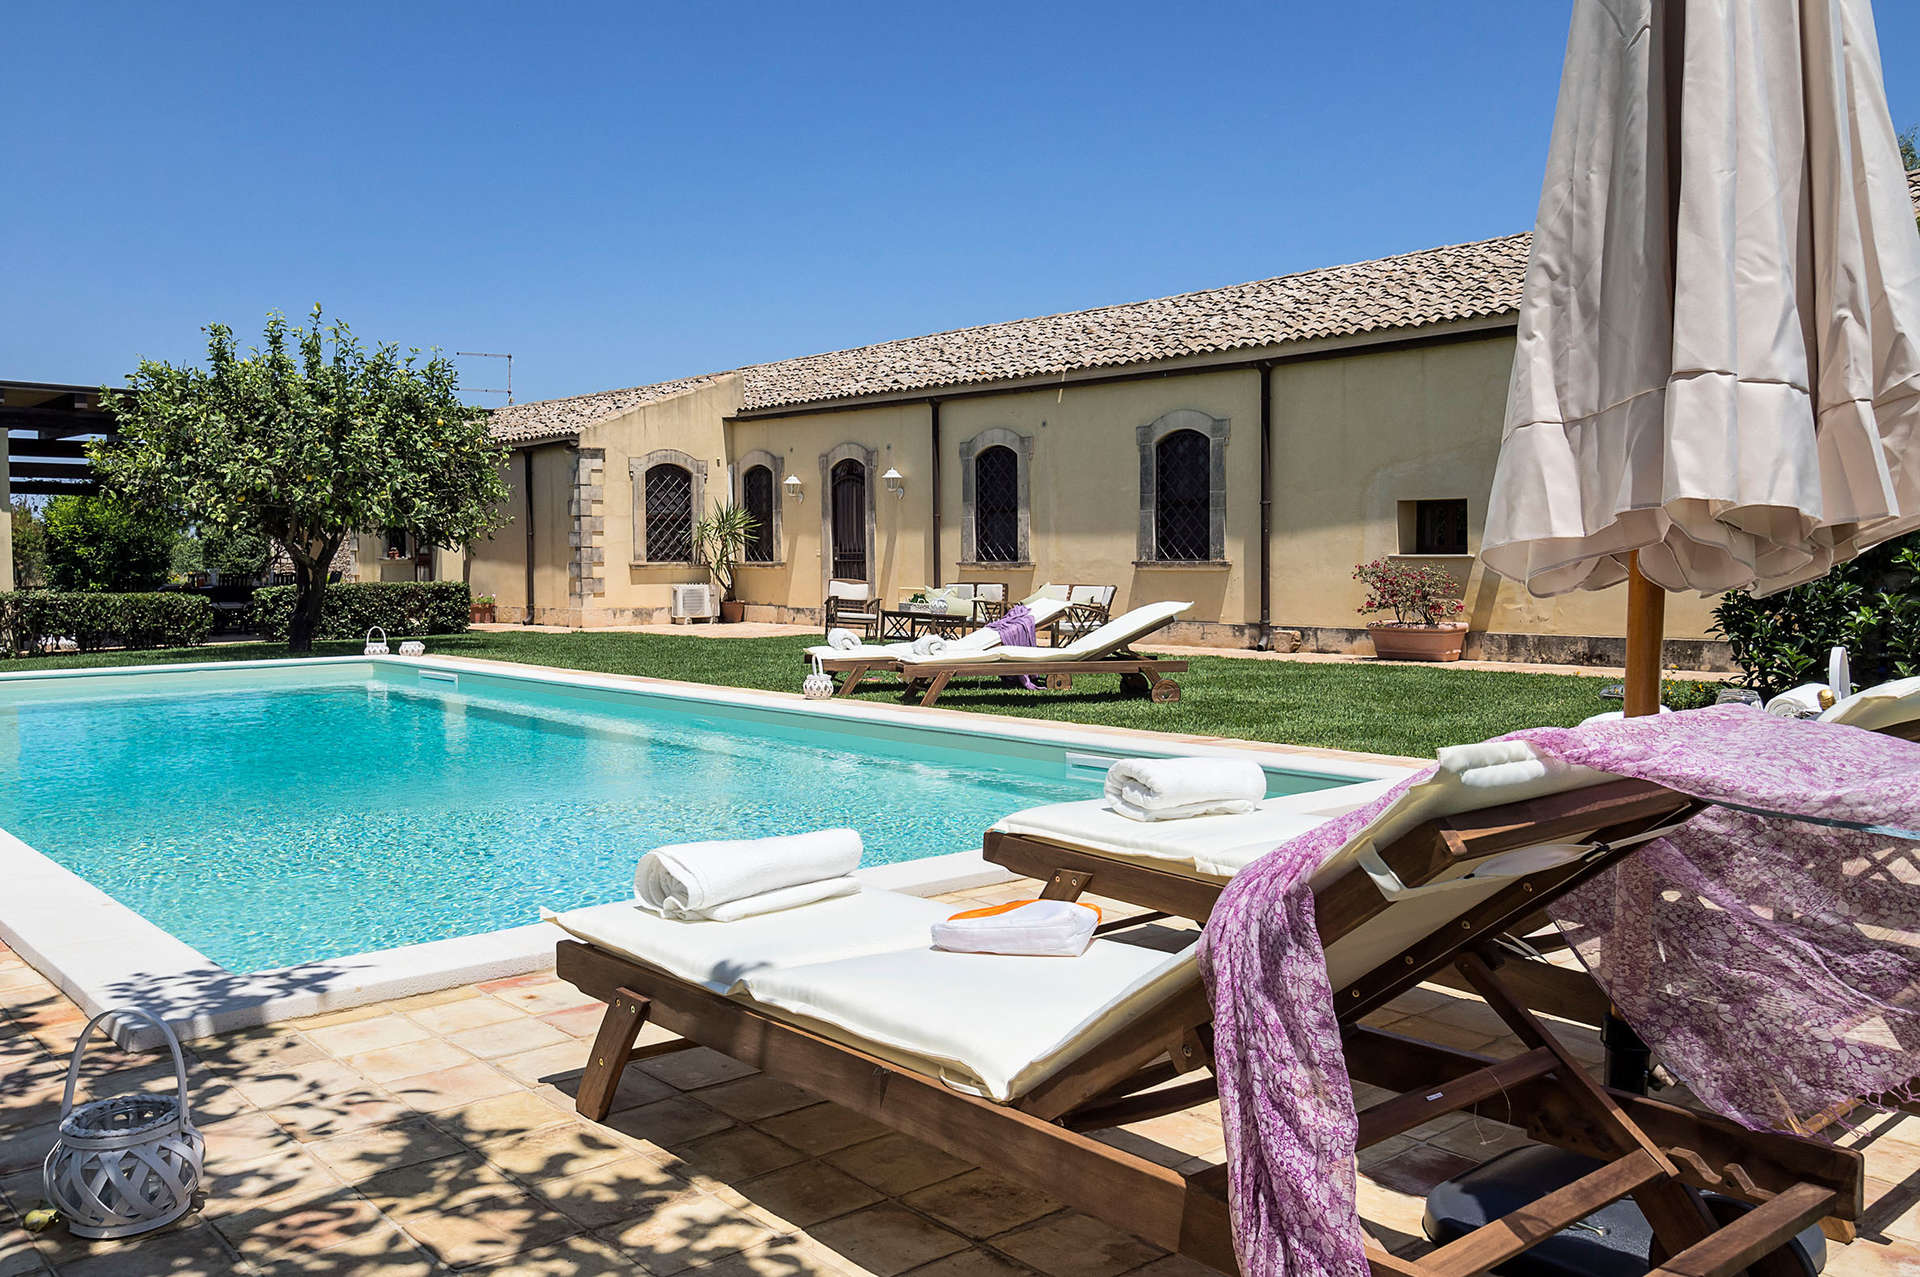 Luxury vacation rentals europe - Italy - Sicily - Siracusa - Don Salvatore - Image 1/37